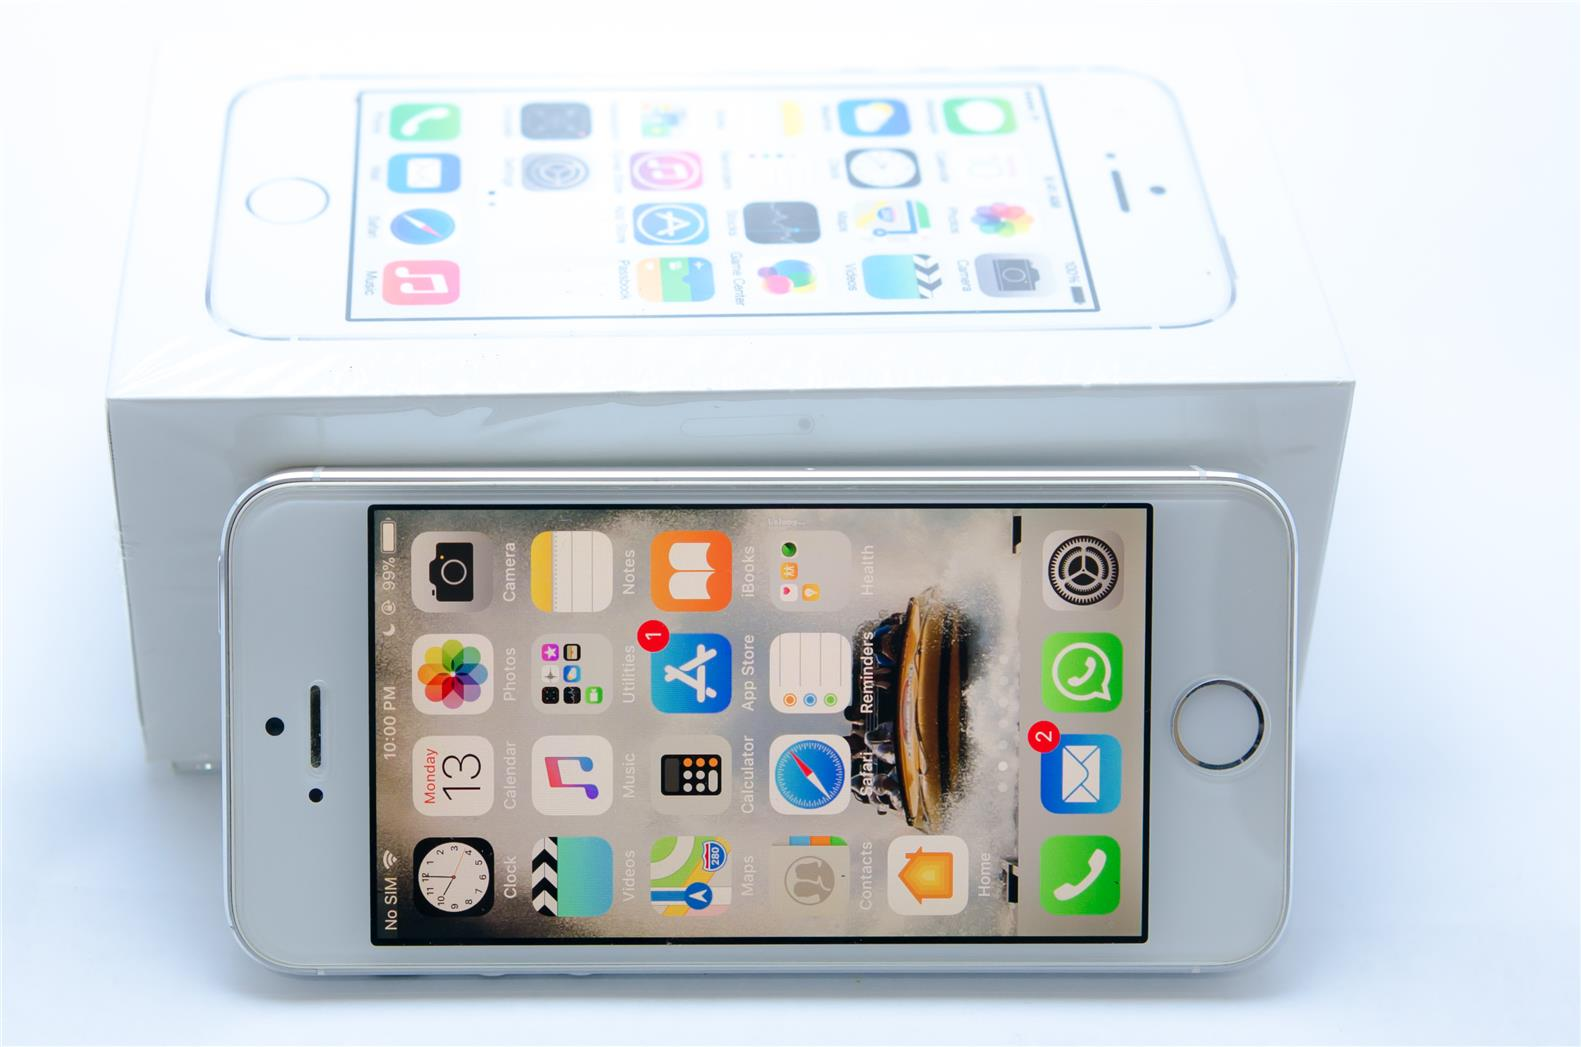 used iphone 5s 16GB Free 4200mah battery casing